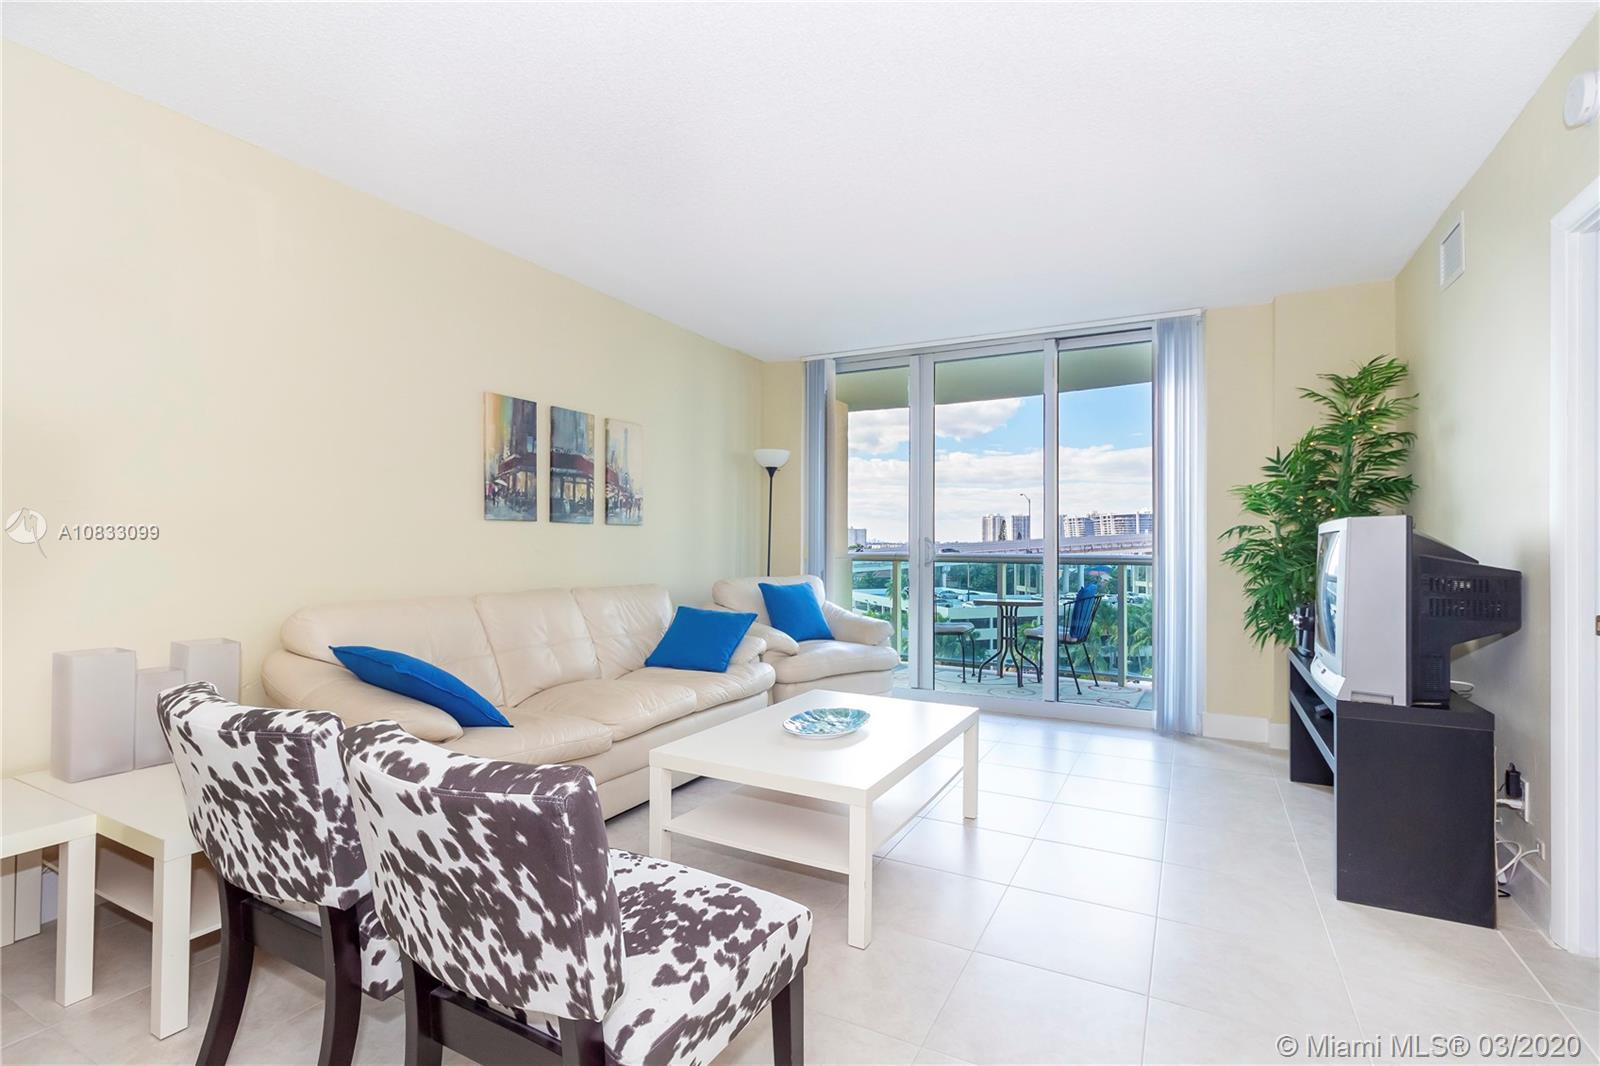 Lowest Price 2 Bed in the Building, Beautiful Intracoastal View 5 Minute walk to the Beach in Stunni